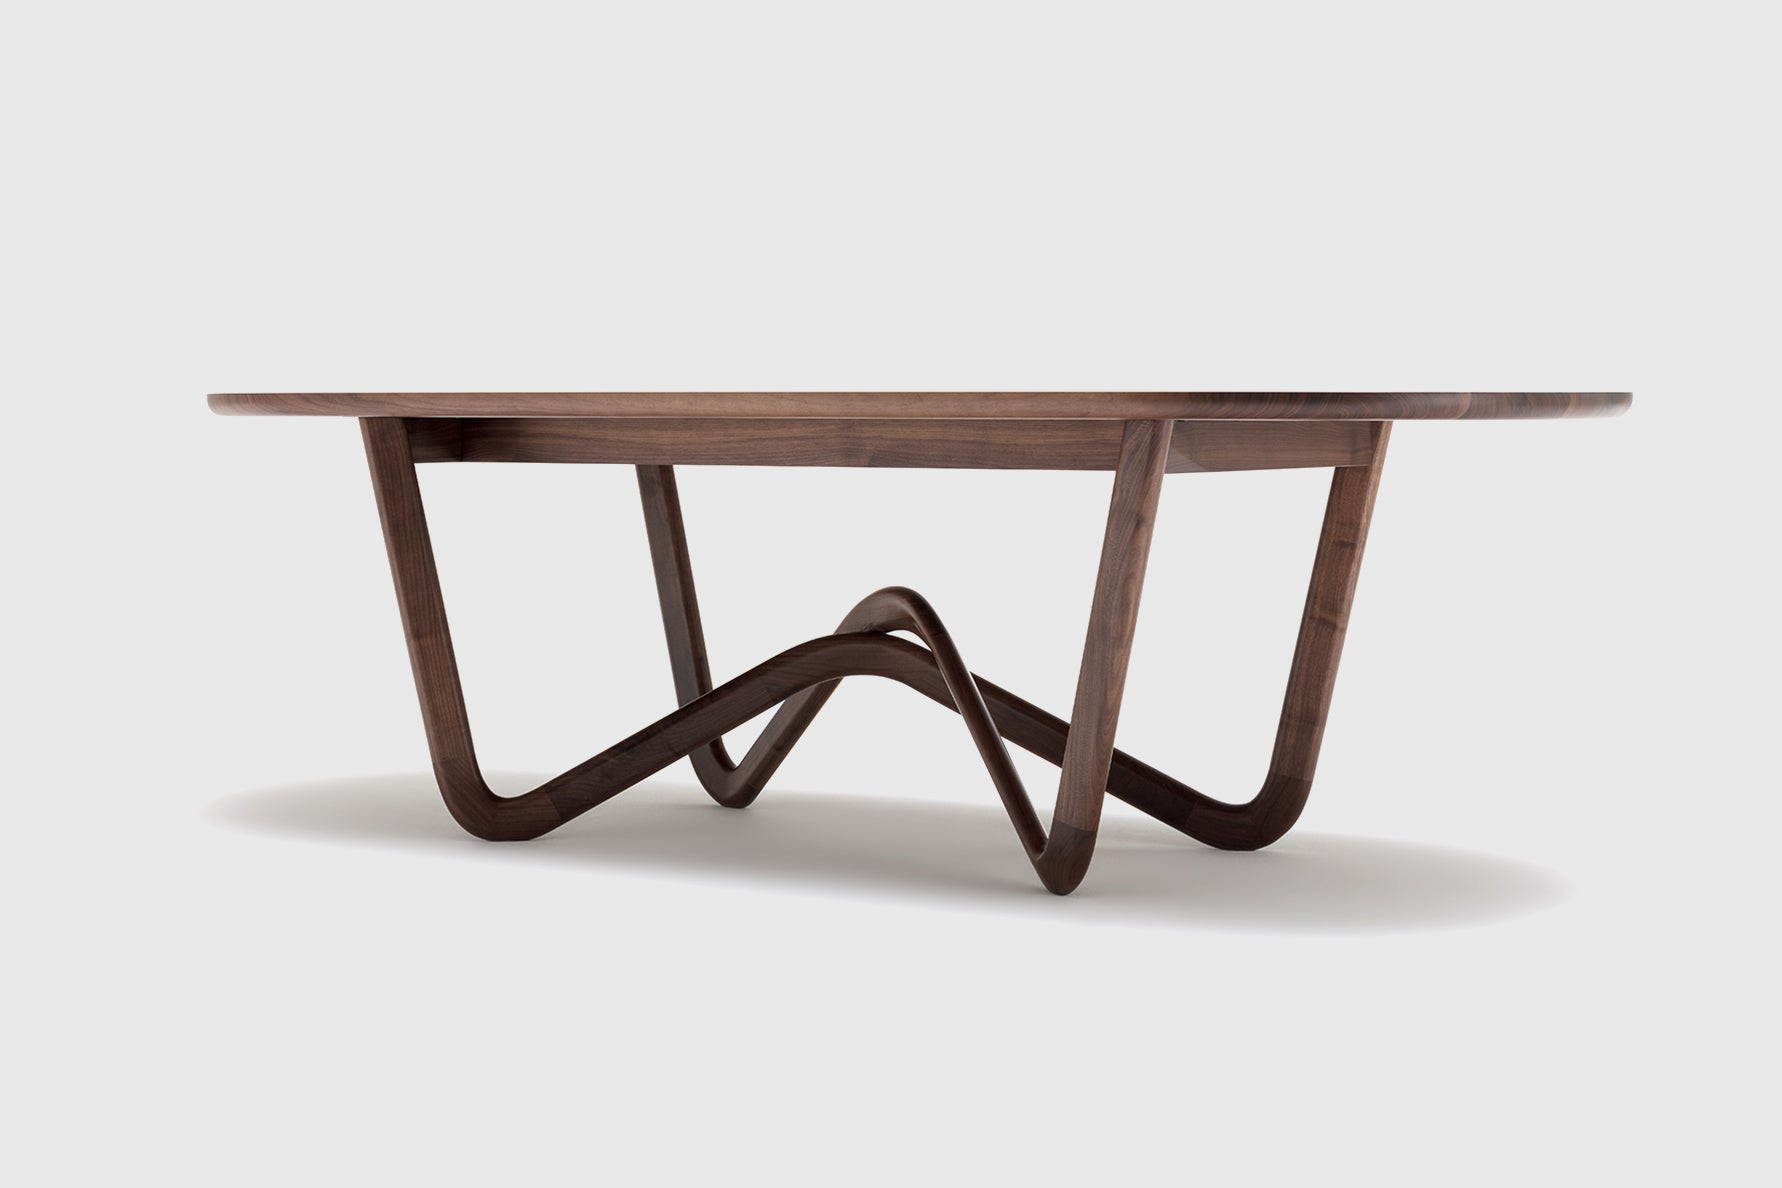 Bodo Sperlein Rolf Benz Walnut Table 988